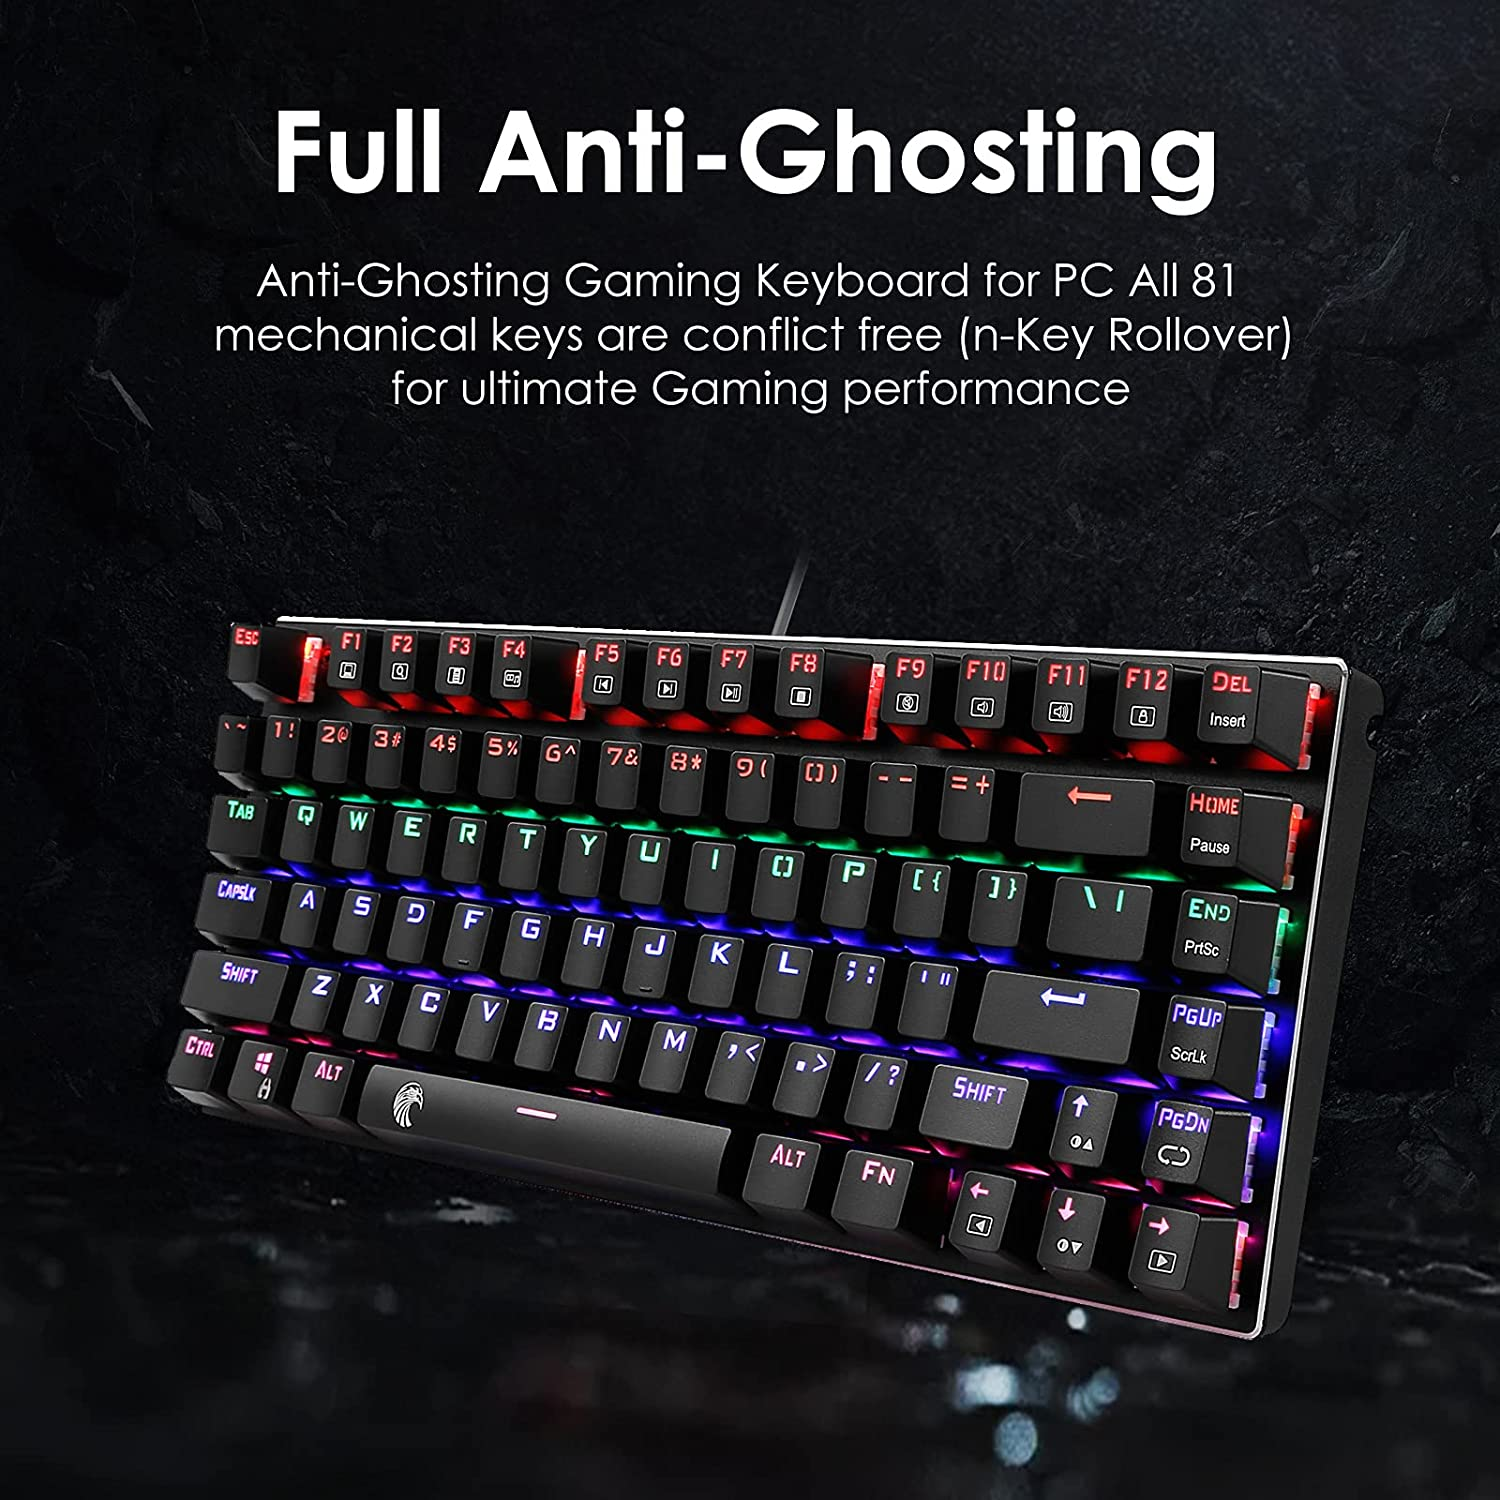 HUO JI 60% Mechanical Gaming Keyboard, E-Yooso Z-88 with Brown Switches, Rainbow LED Backlit, Compact 81 Keys Hot Swappable, Black